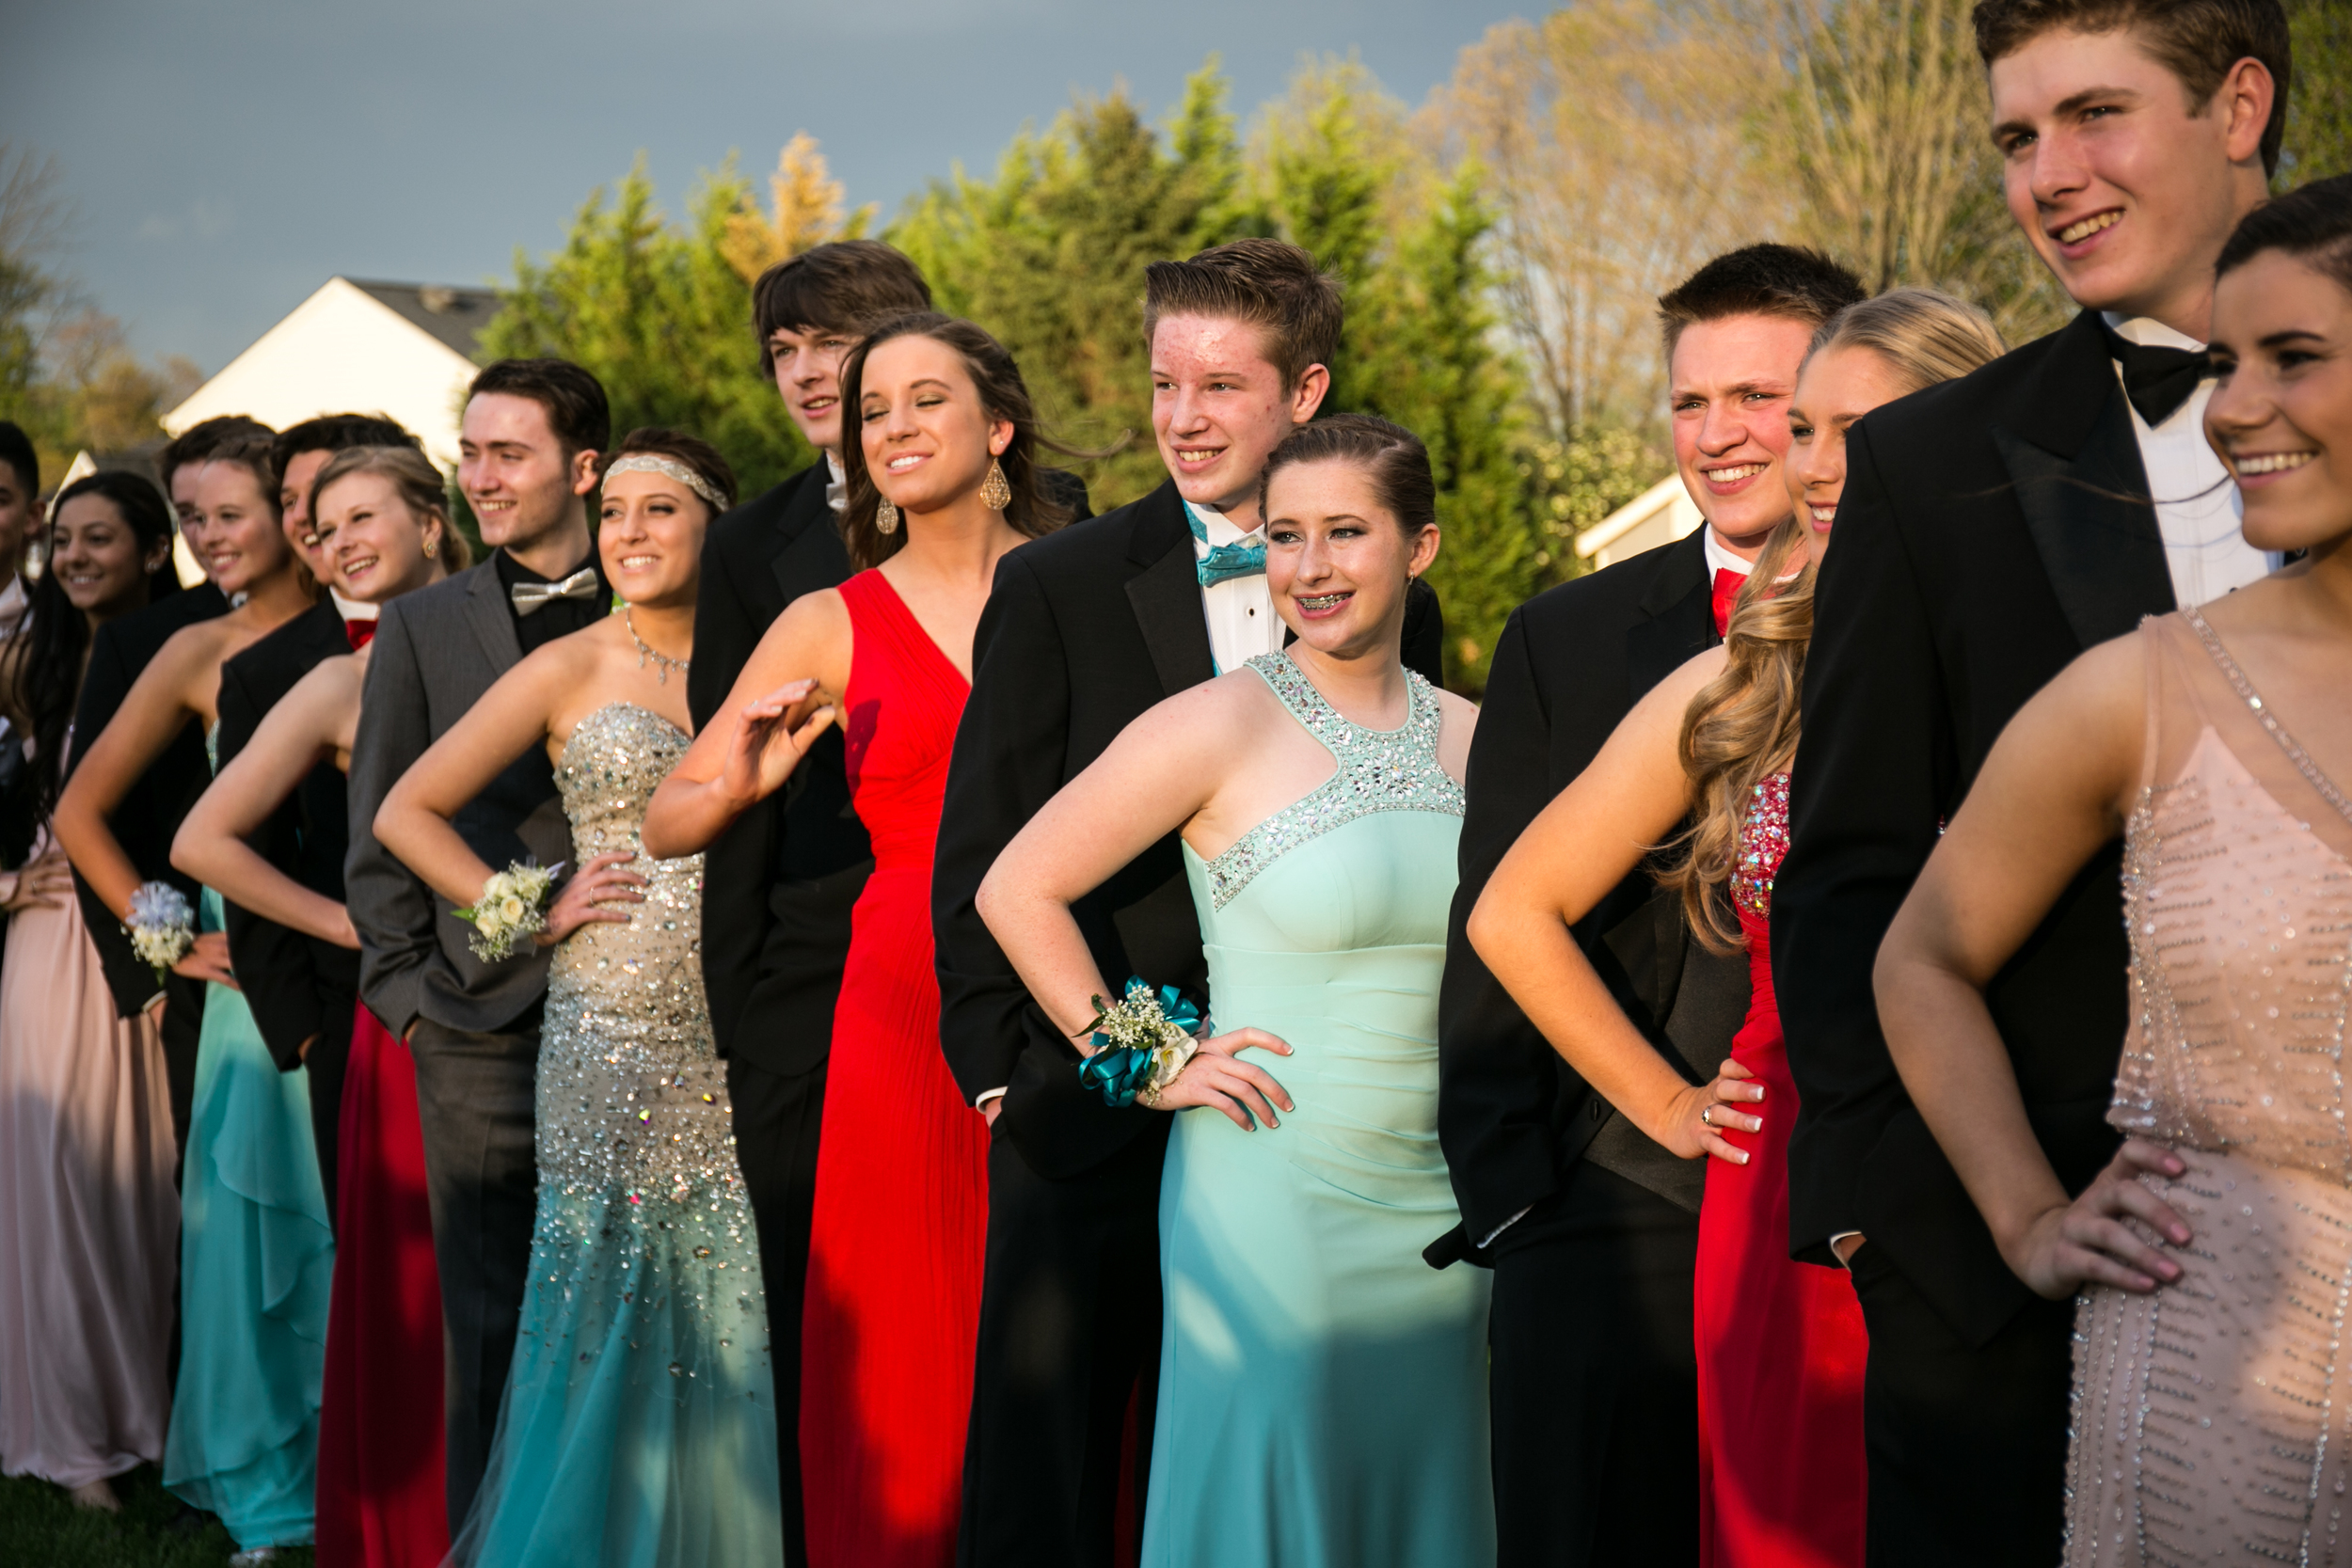 Mount-De-Sales-Pre-Prom-May-2014-42.jpg